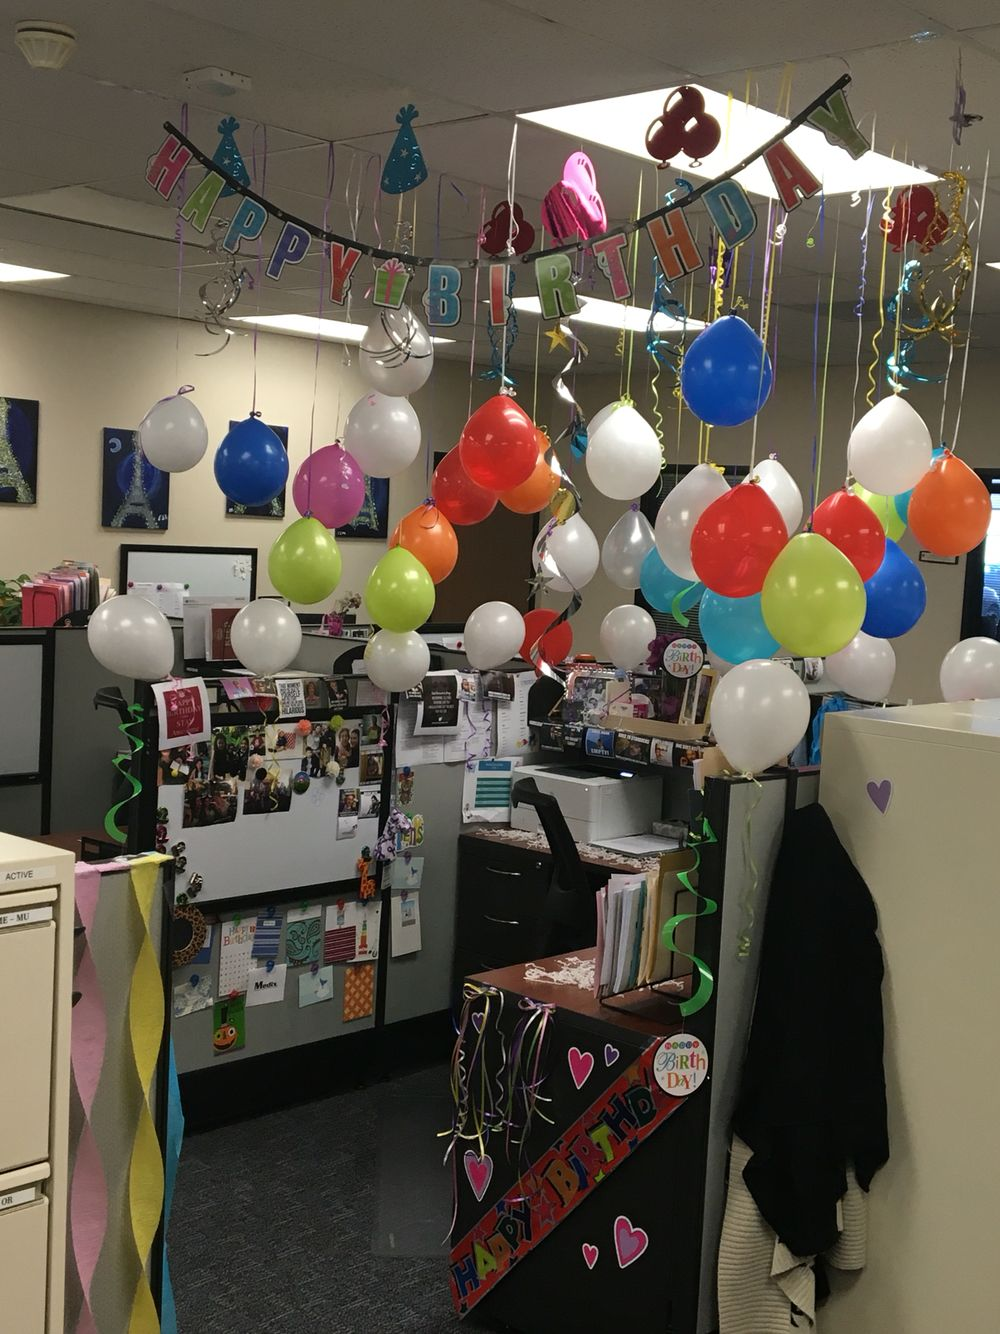 Cubicle birthday decoration Cubicle Birthday Decorations Office